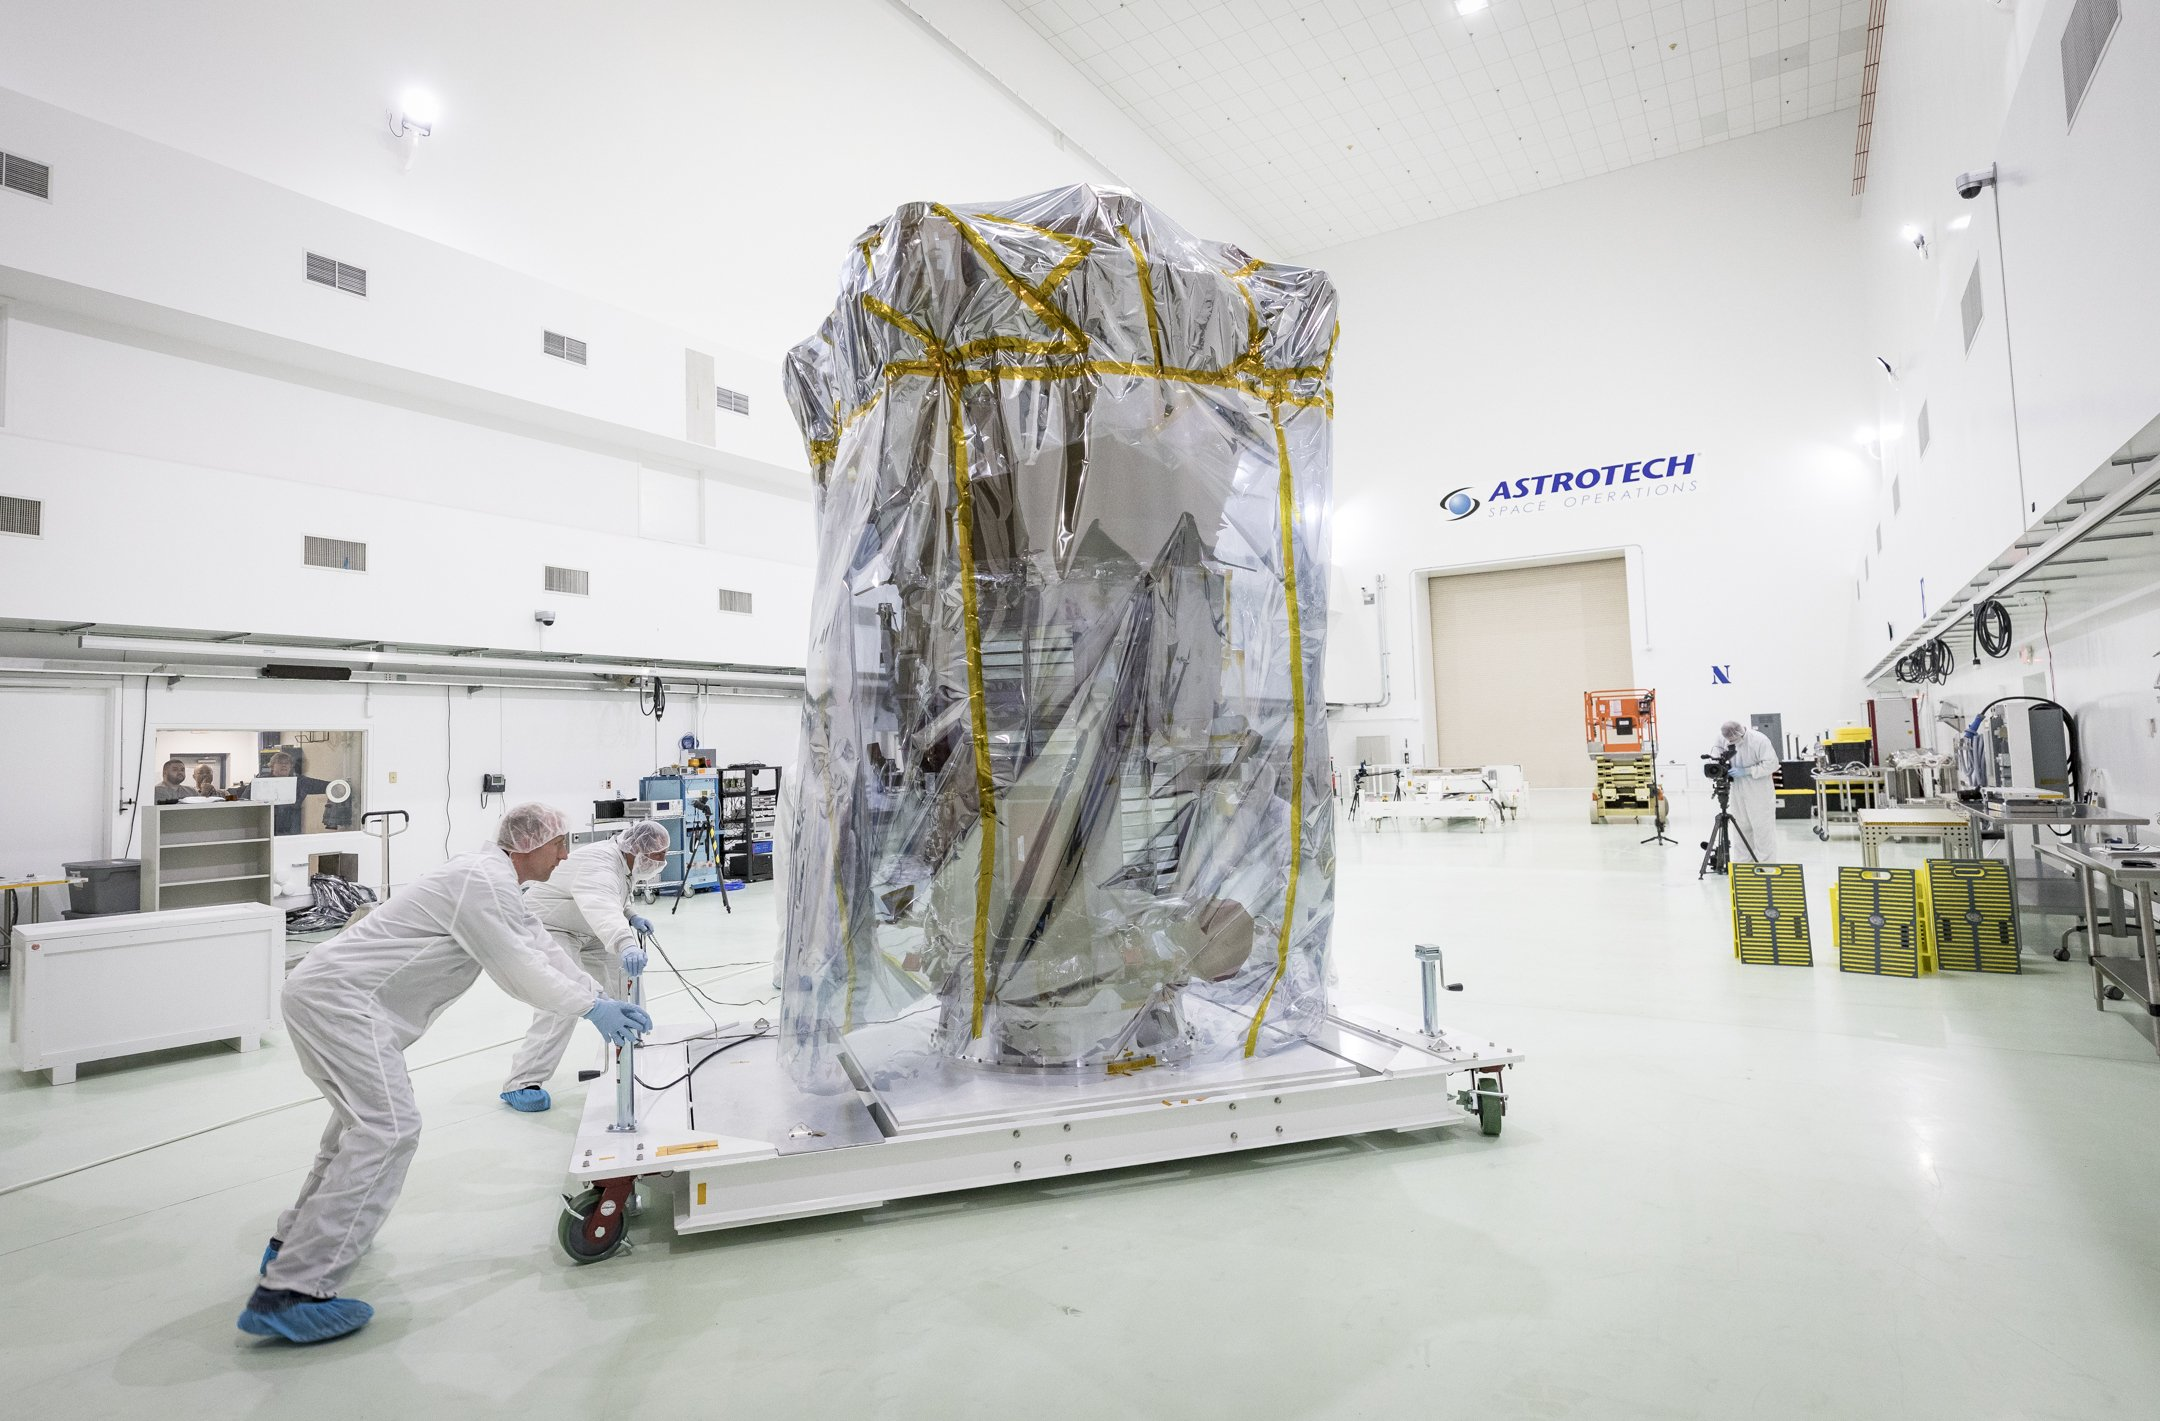 NASA's Parker Solar Probe is wheeled into position in a clean room at Astrotech Space Operations. Credits: NASA/Johns Hopkins APL/Ed Whitman